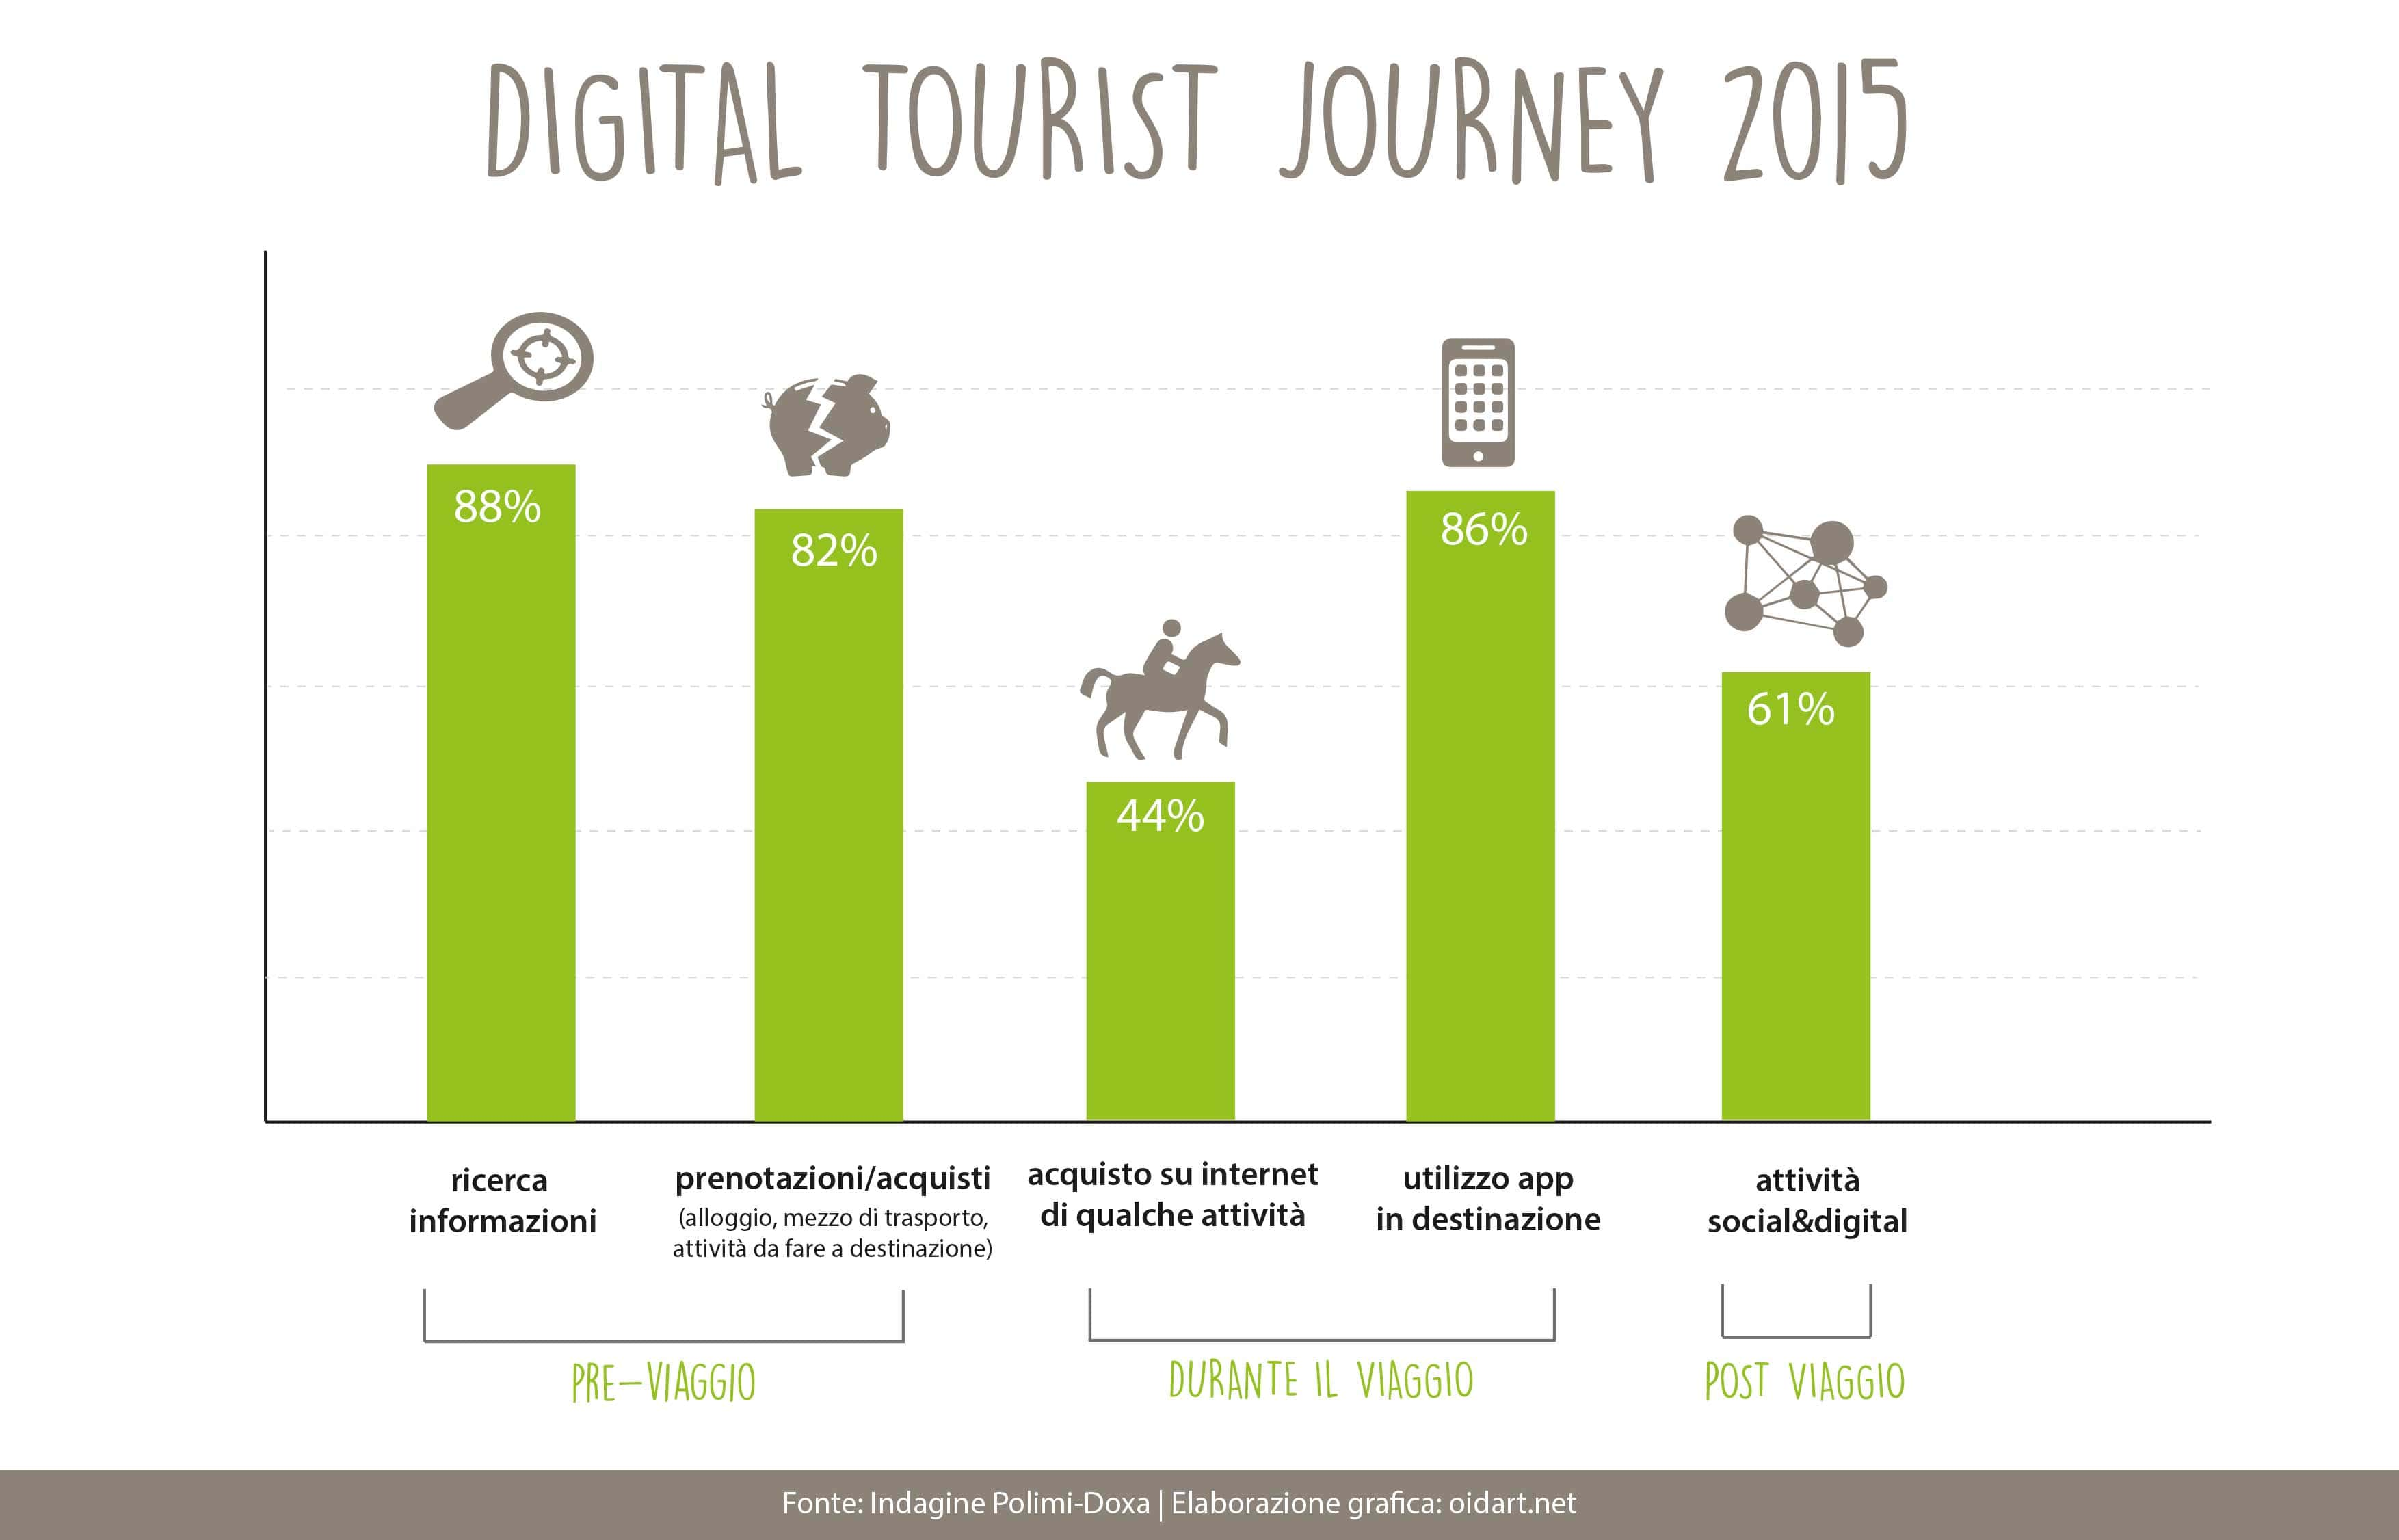 digital tourist journey